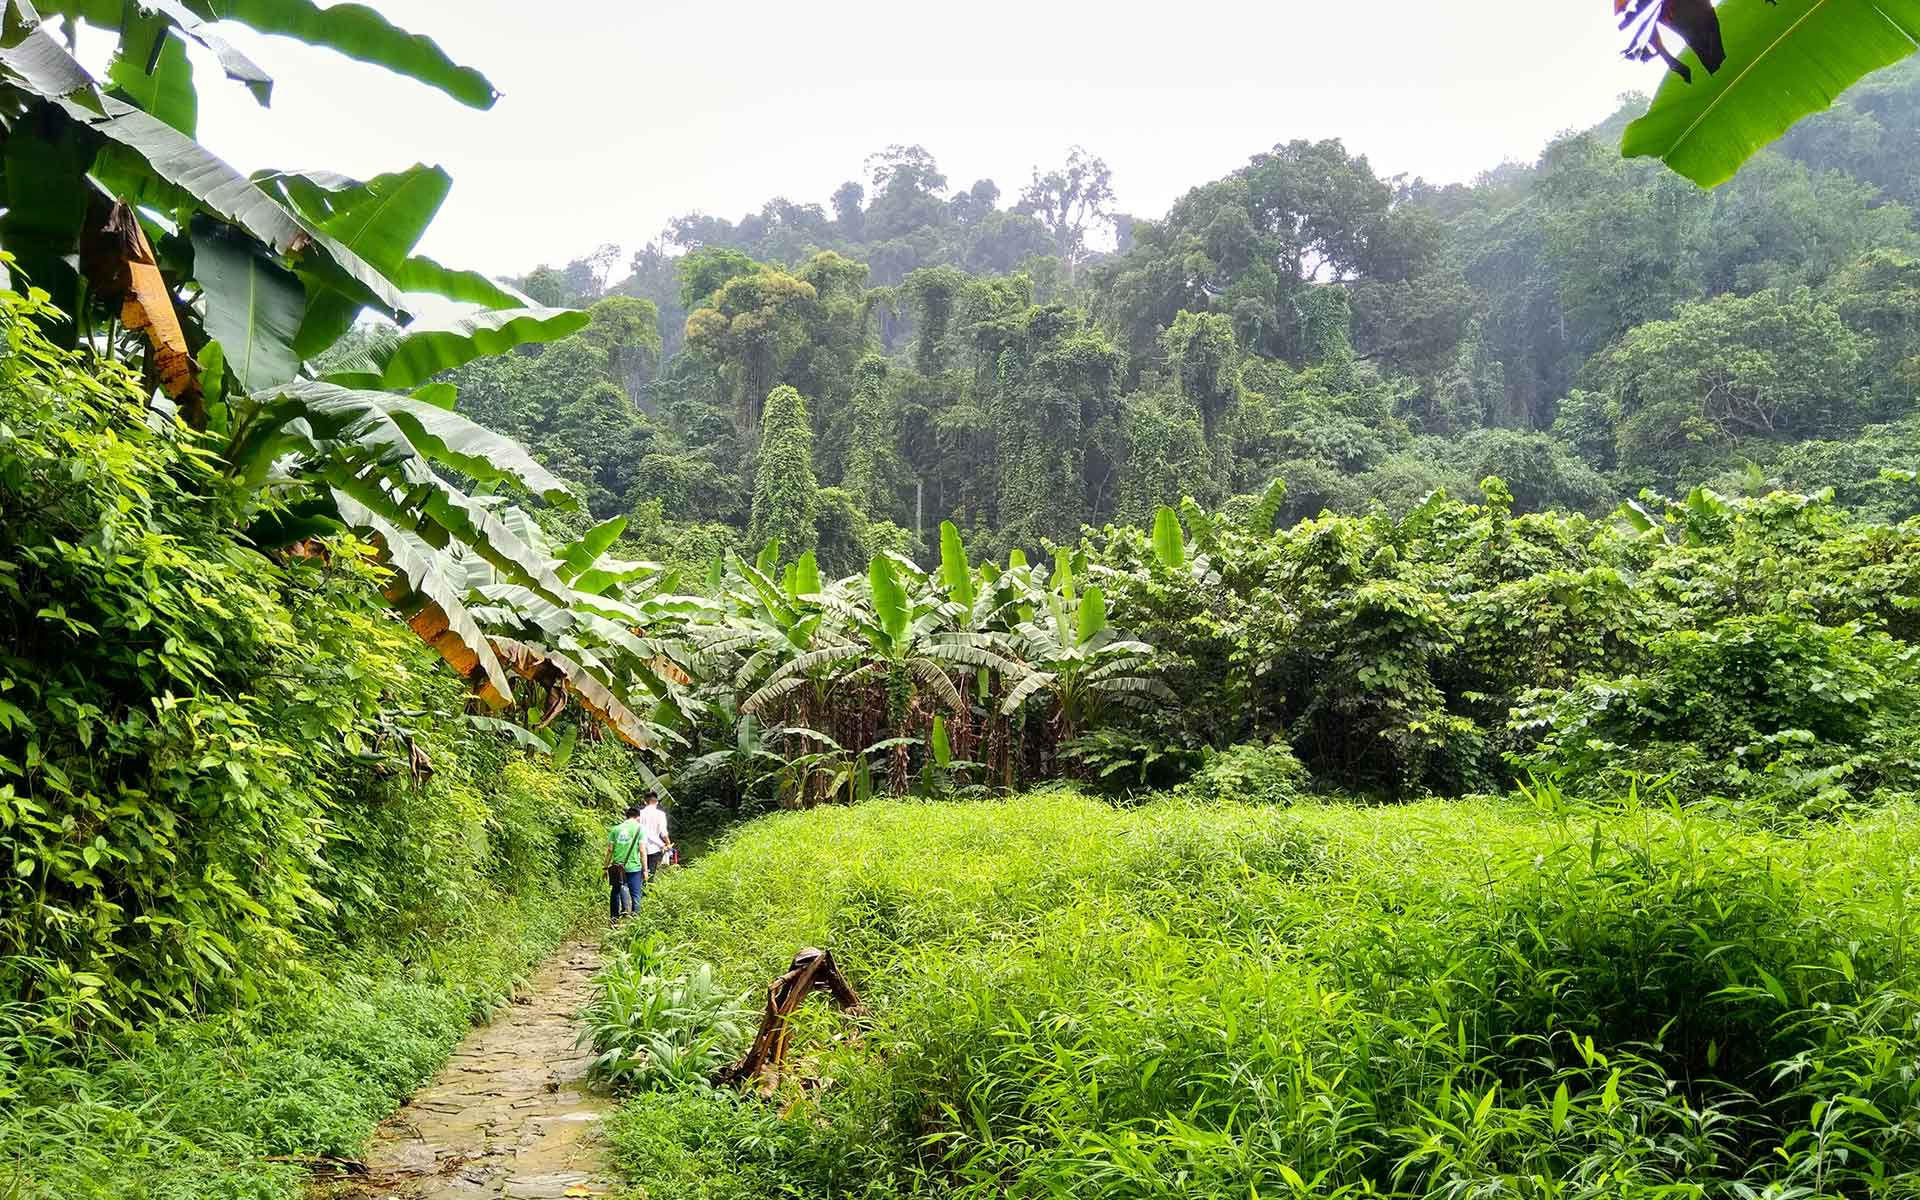 Trekking in the primary forests